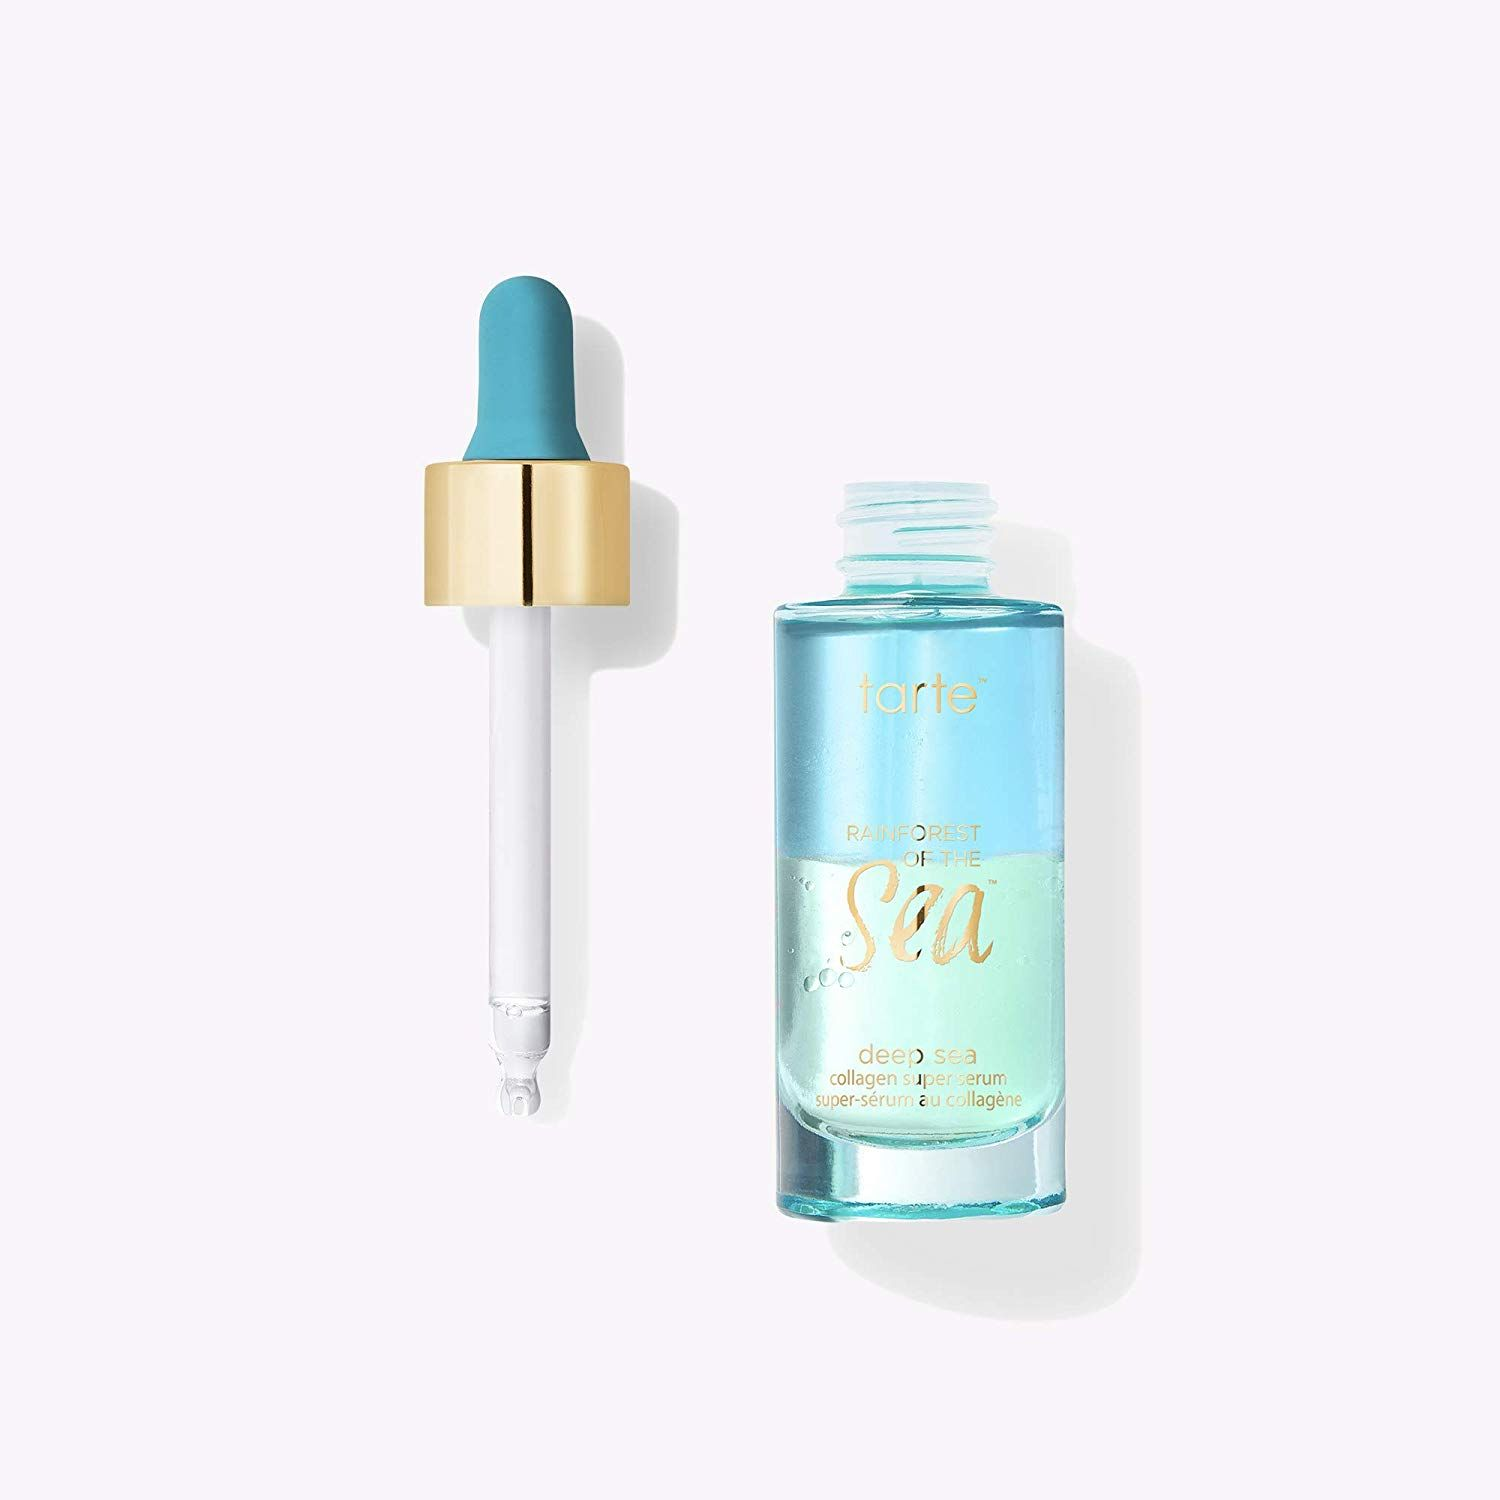 Tarte Rainforest Of The Sea Deep Sea Collagen Super Serum Full Size 28ml Details Can Be Found By Clicking On In 2020 Winter Skin Care Collagen Serum Tarte Cosmetics